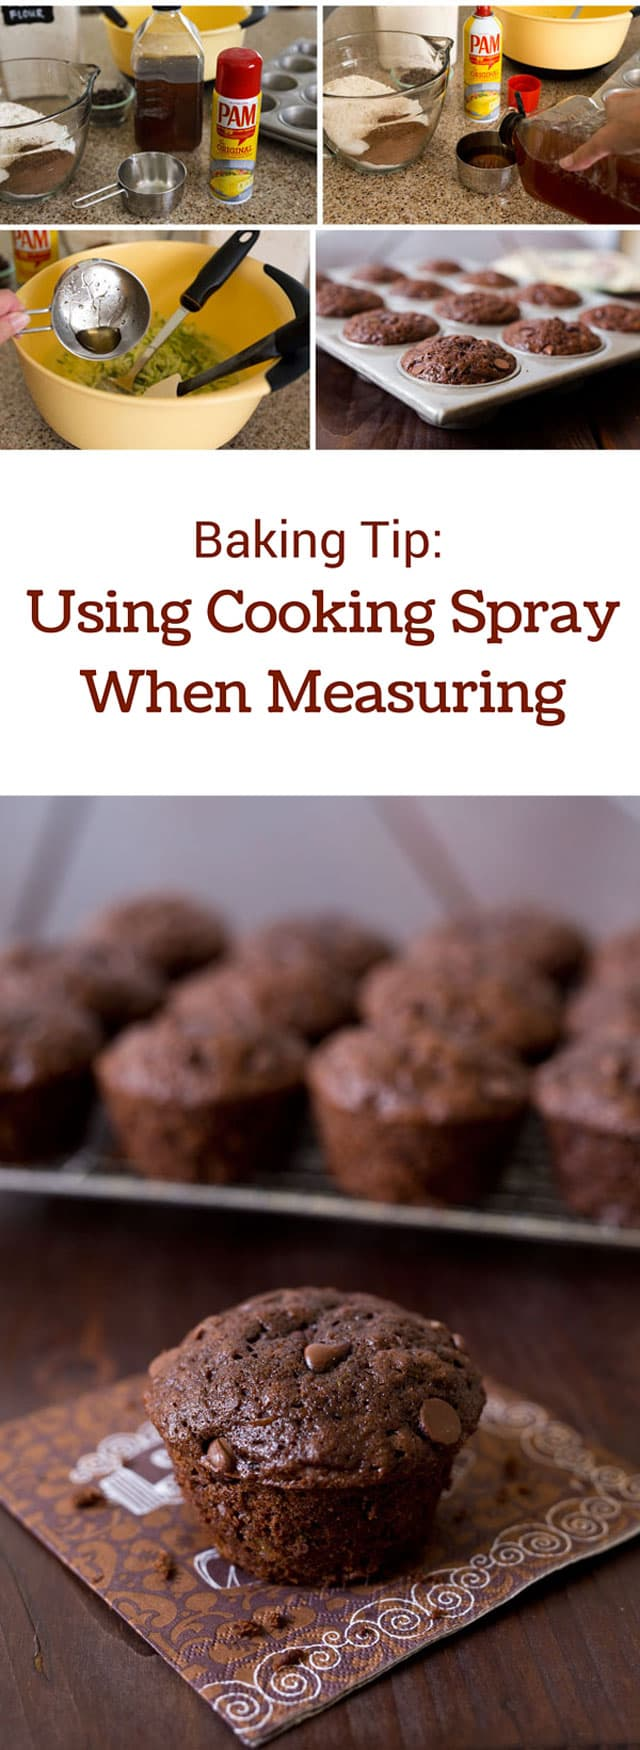 When you're measuring sticky liquids like agave, corn syrup or honey, spray your measuring cup with PAM Cooking Spray before you measure the ingredient. The sticky ingredients won't stick to the cup. Instead, it beads up and runs out of the cup.